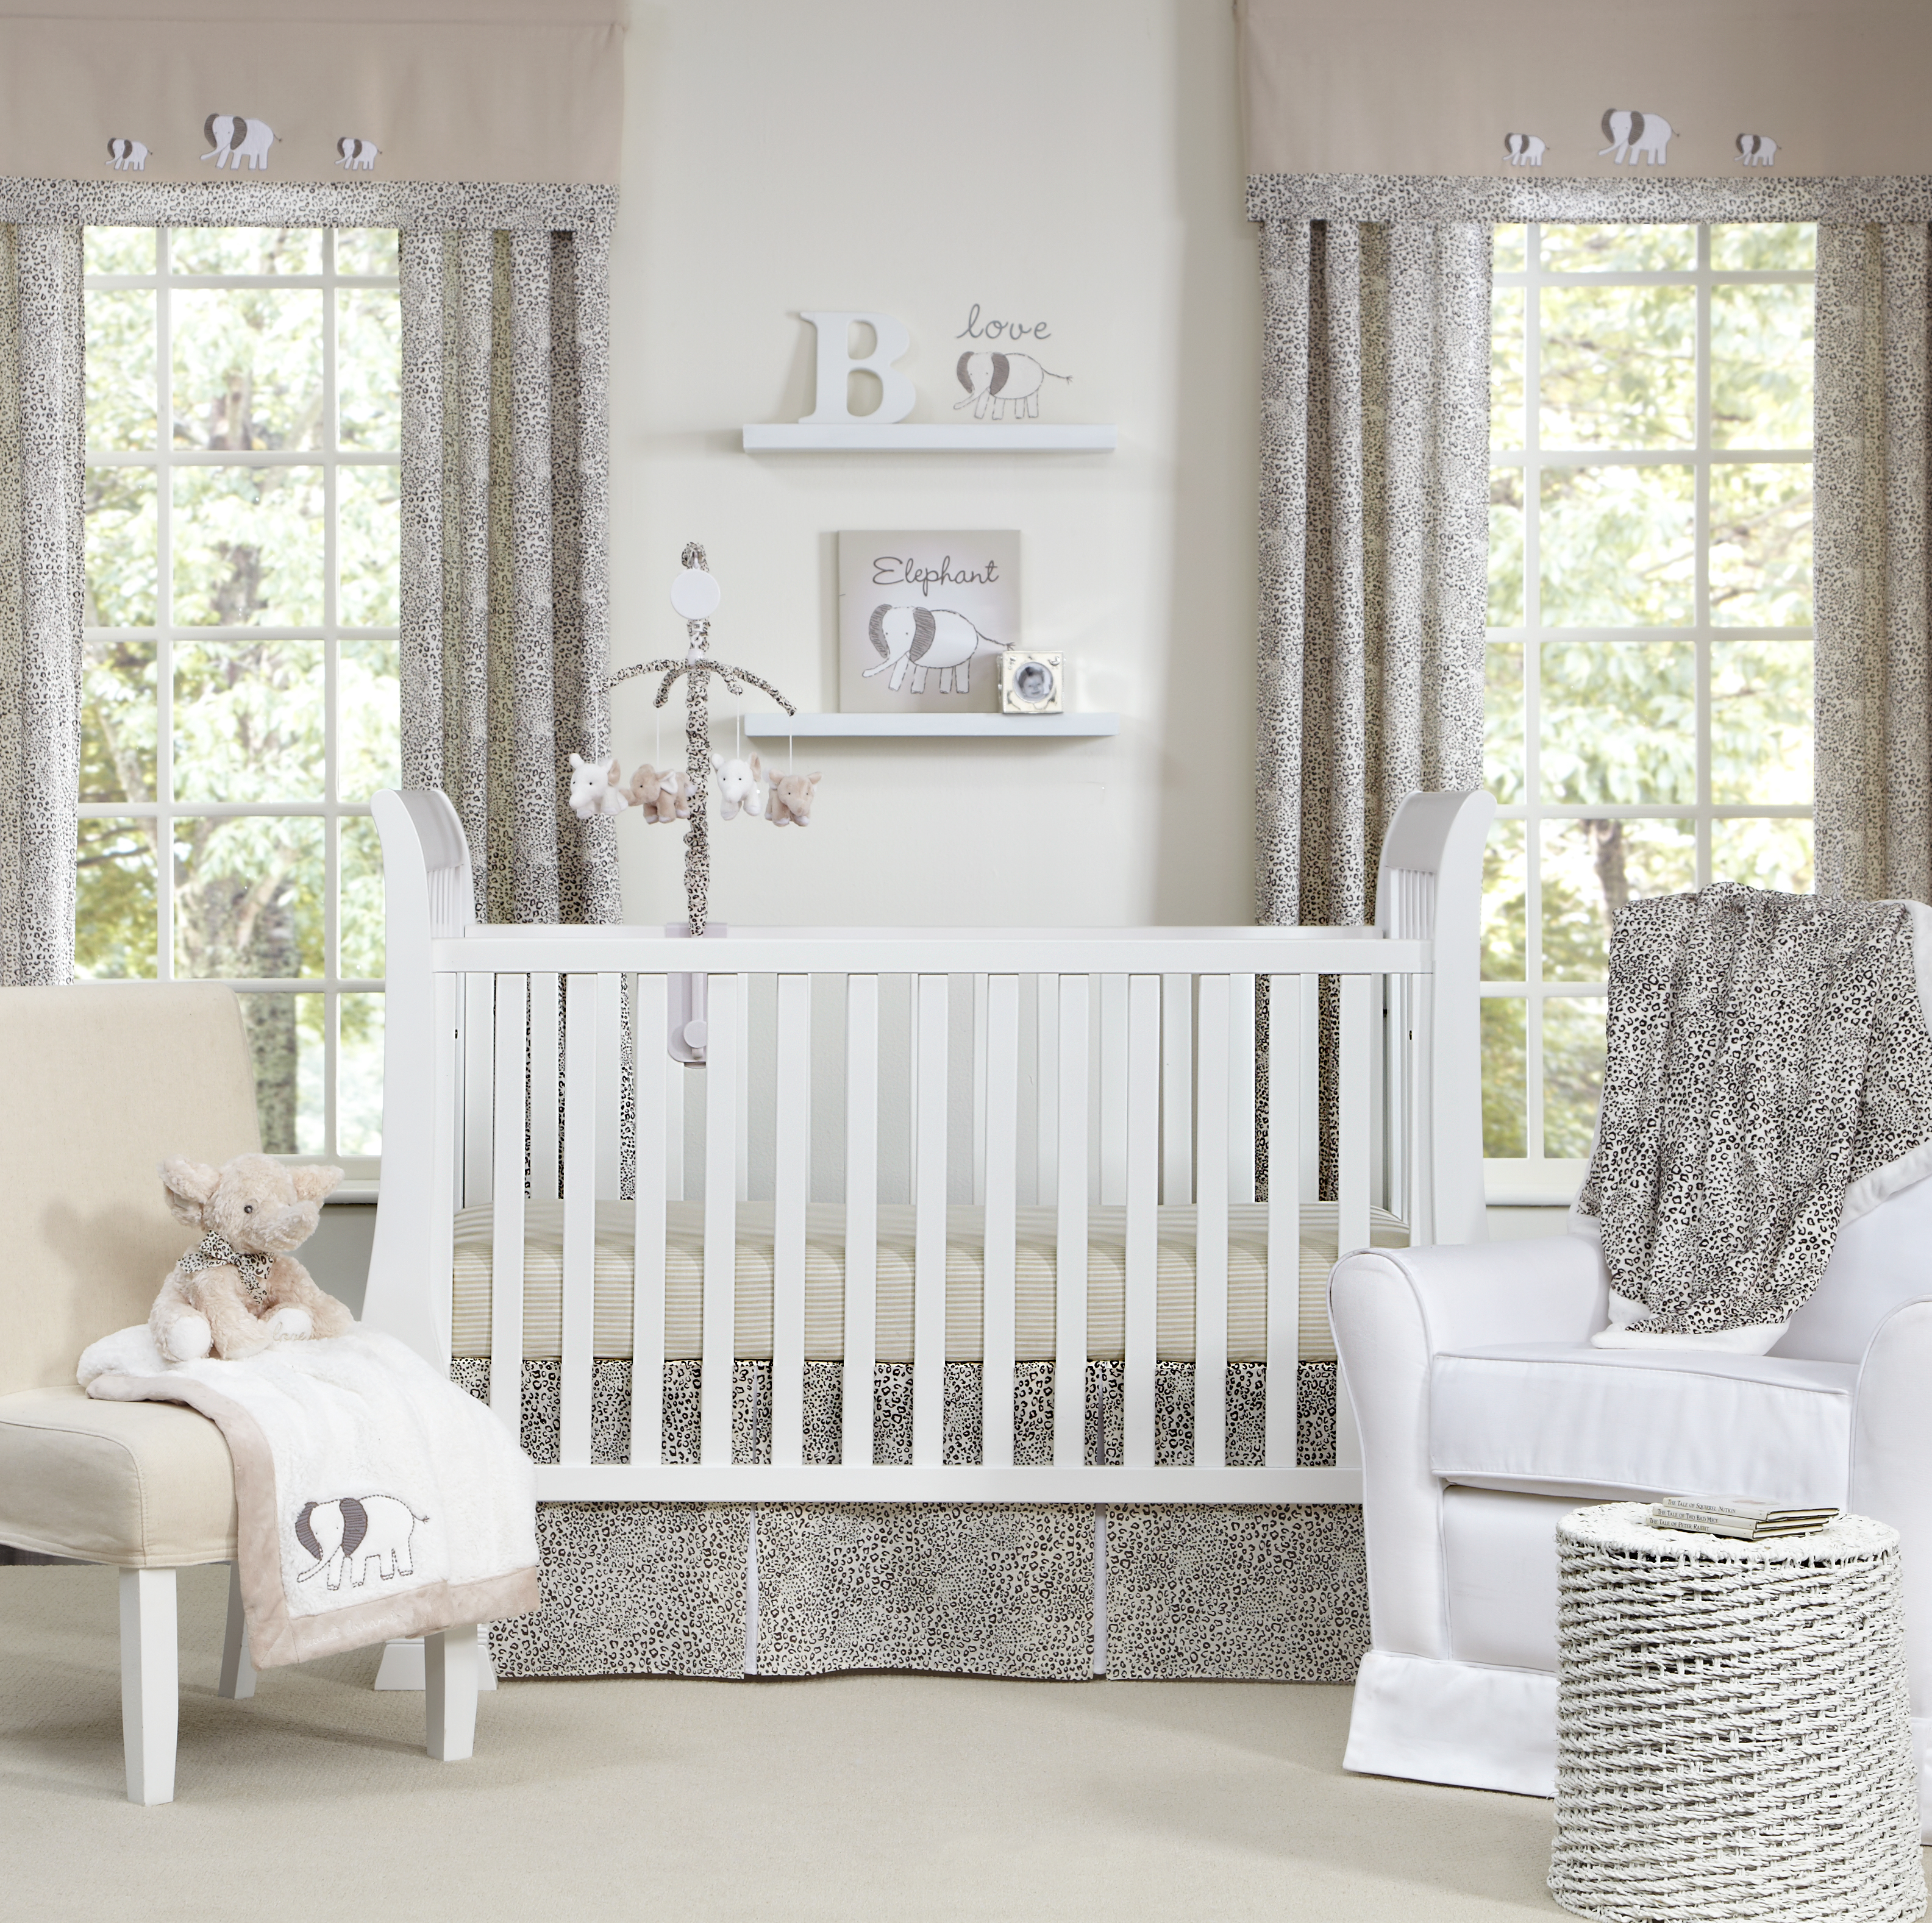 Inspirational Modern Crib Bedding With Lovely Color Combination HouseBeauty